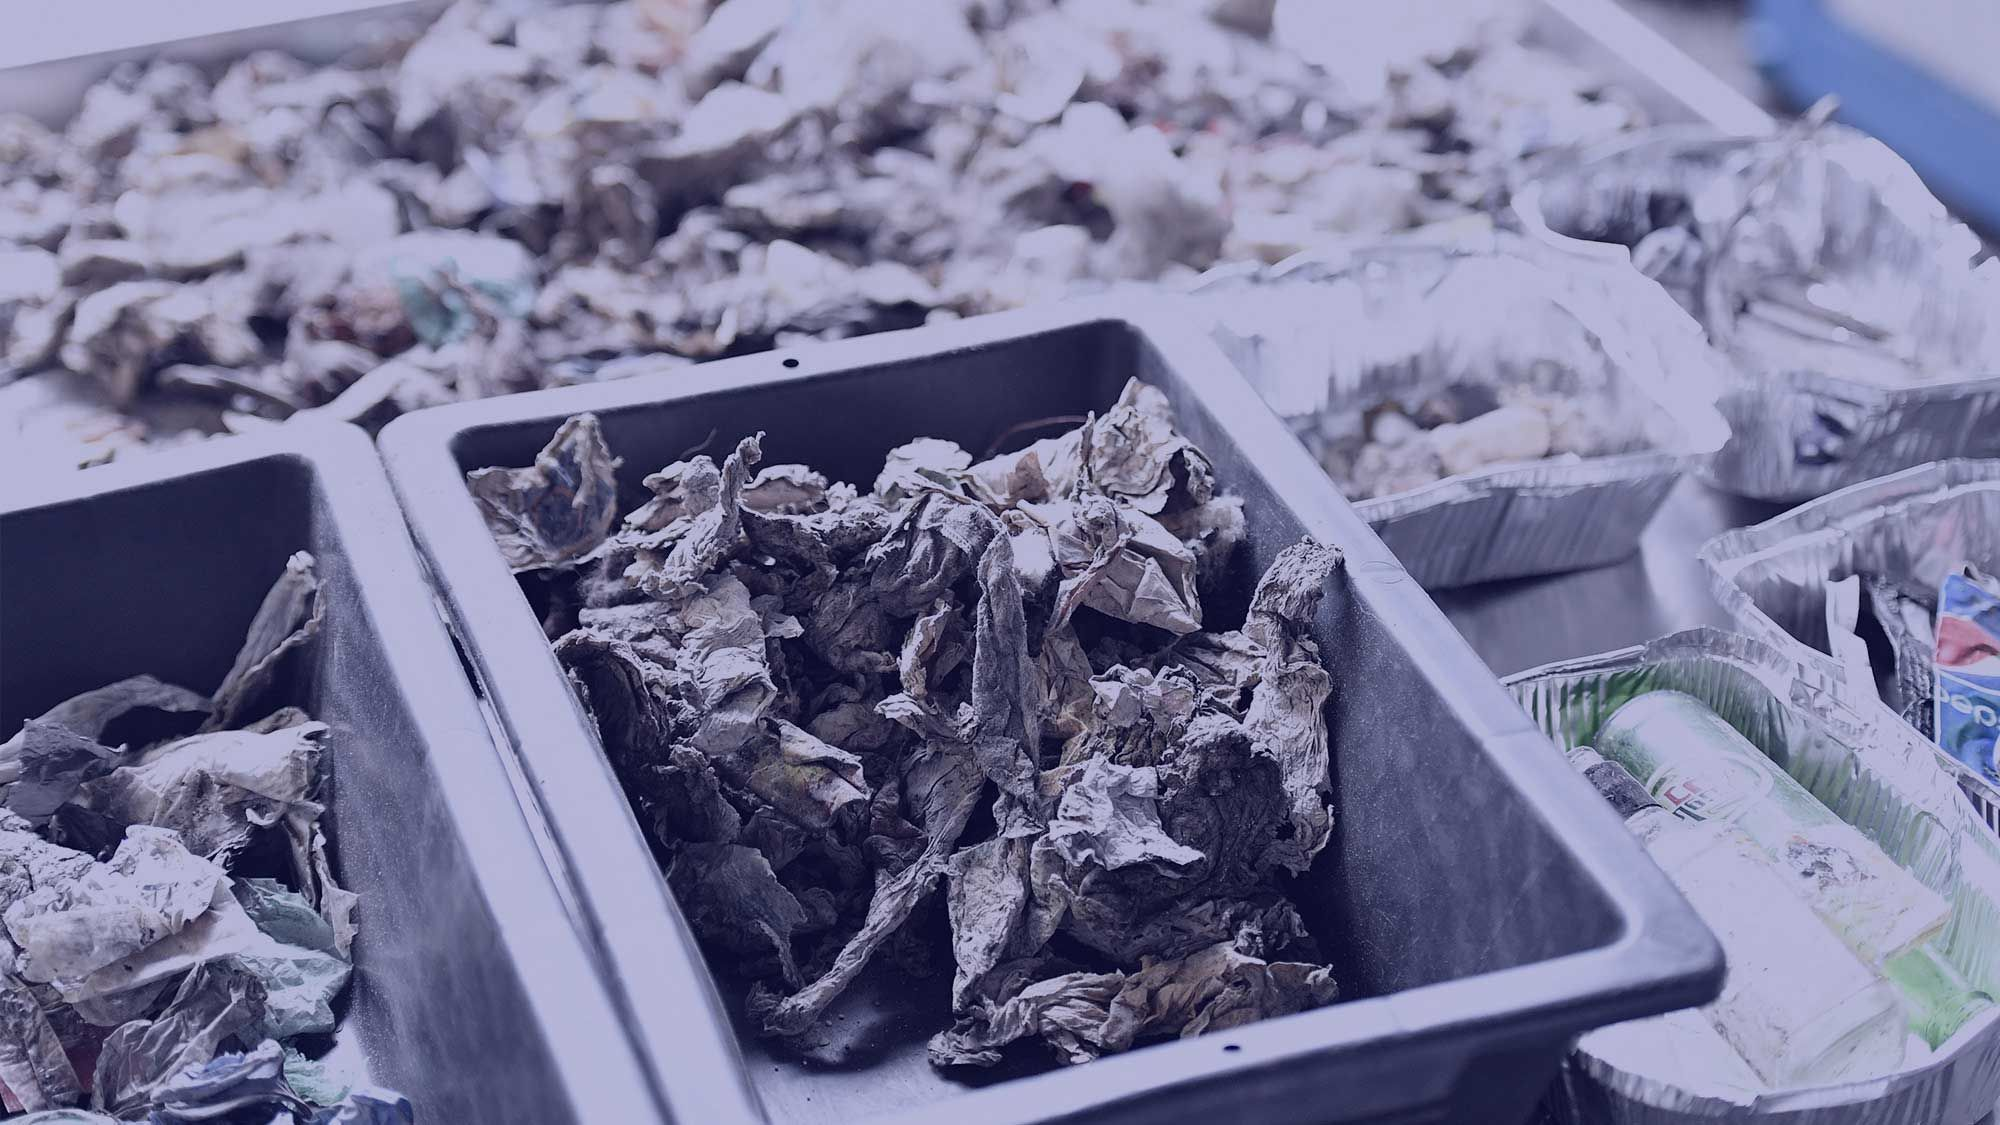 Recycling and waste recovery